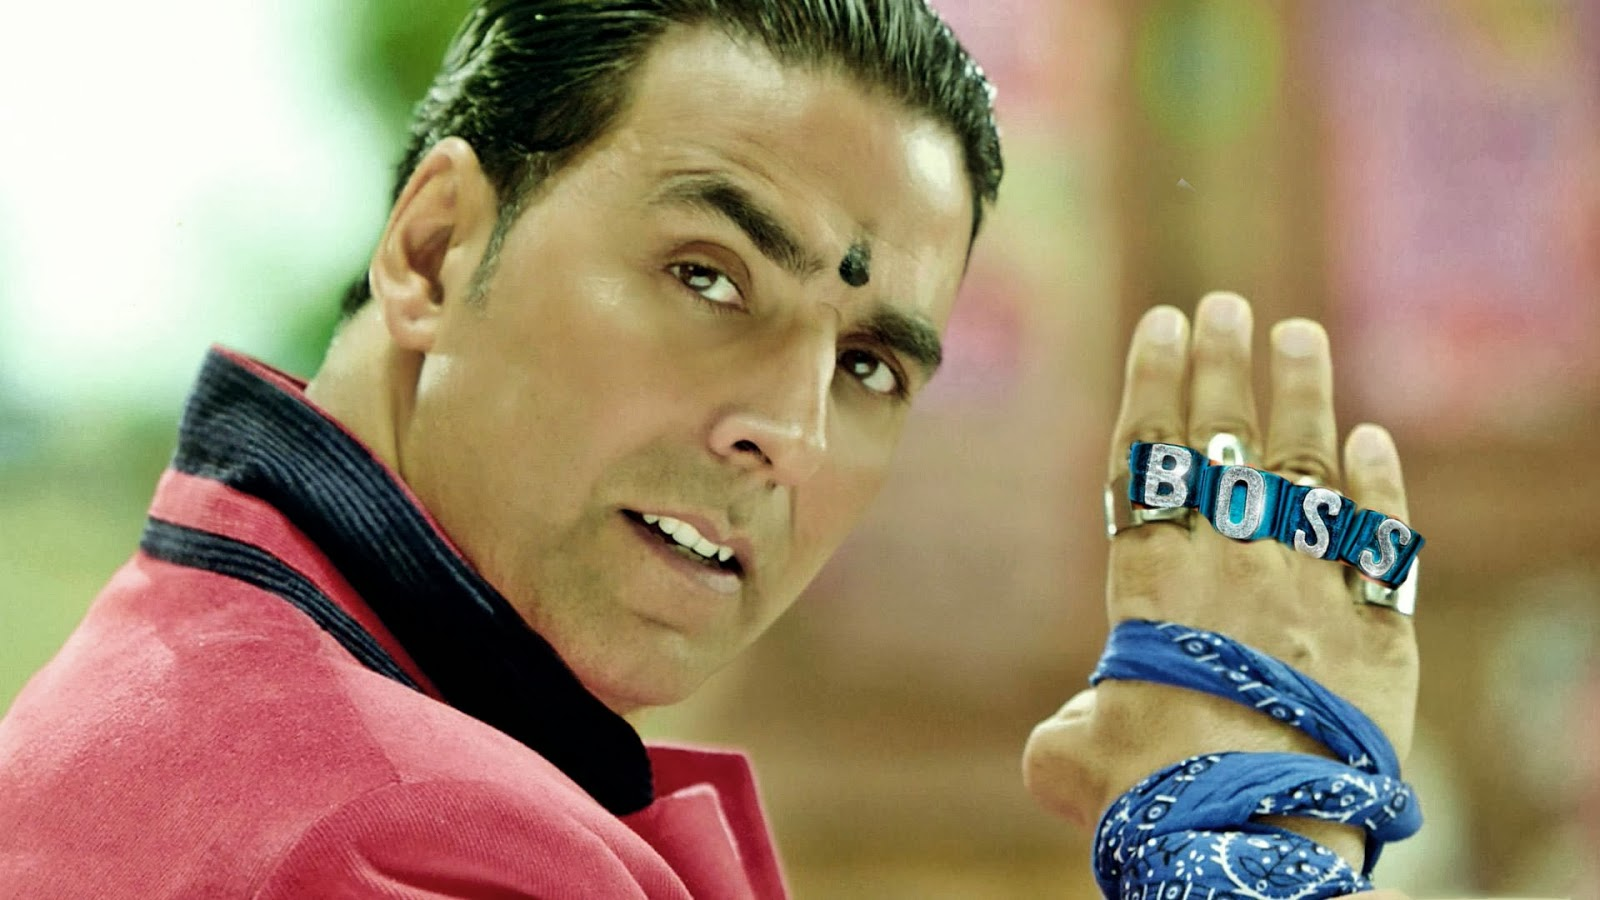 Akshay Kumar Wallpapers And Images